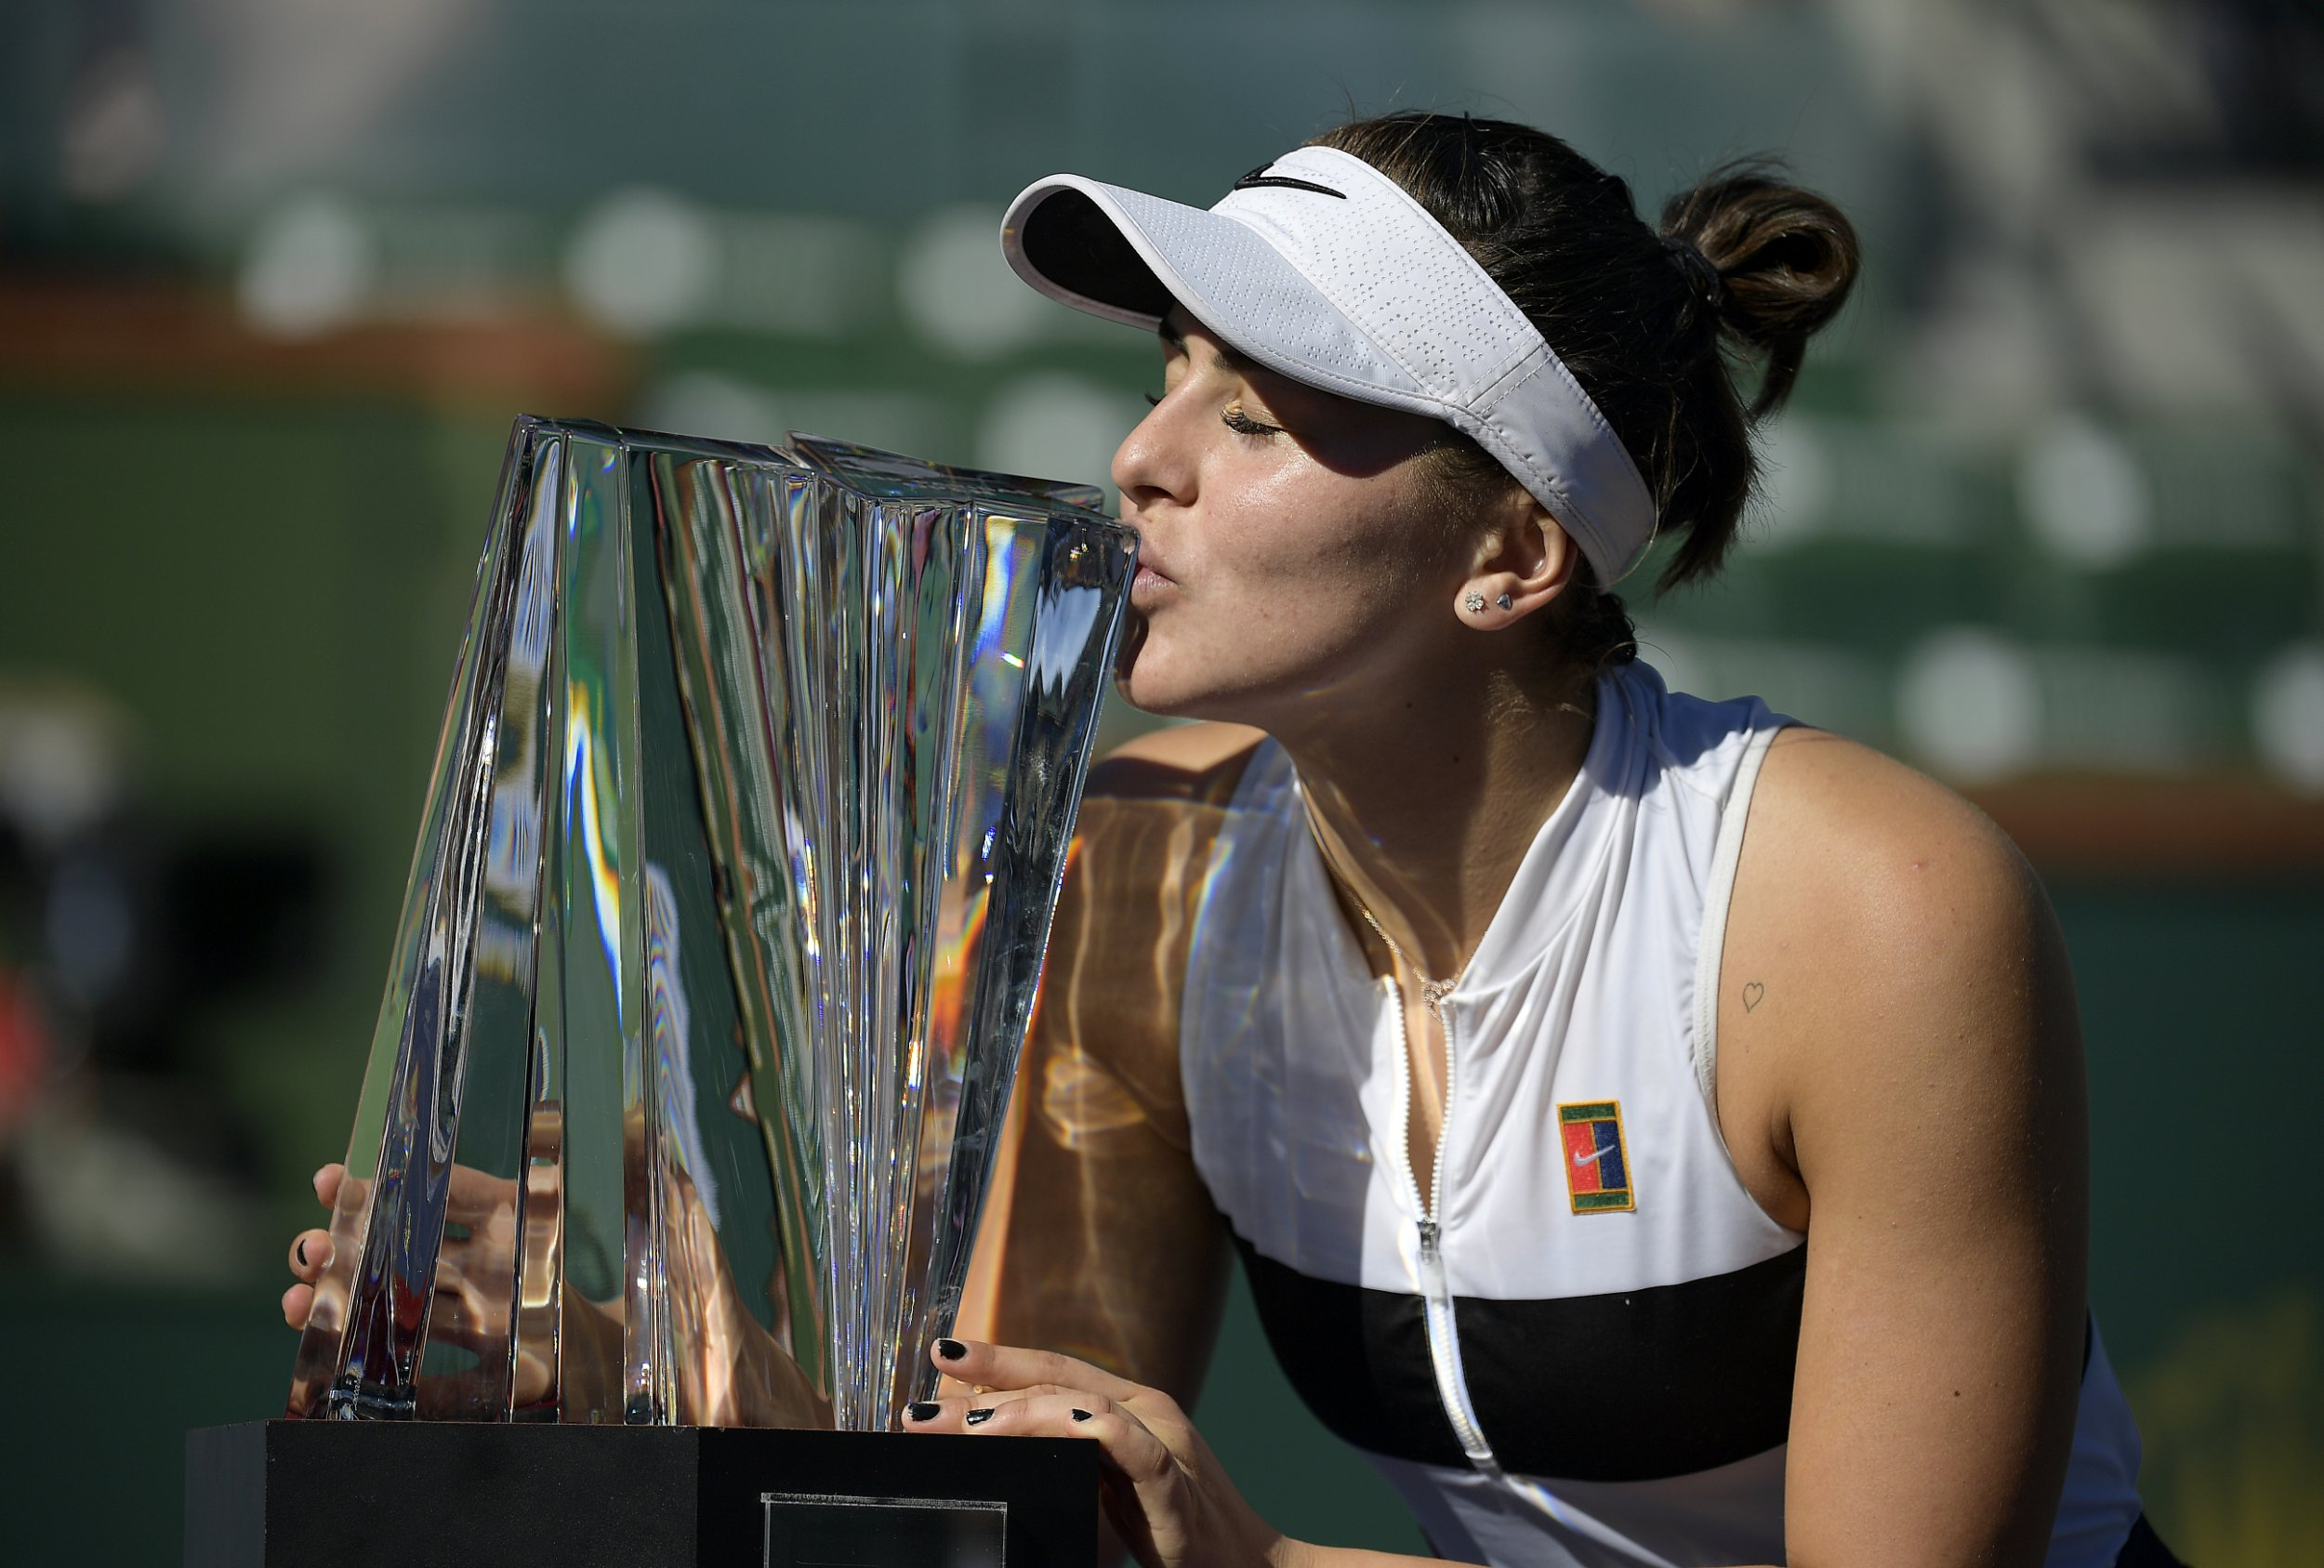 Canadian sensation Bianca Andreescu stuns Angelique Kerber to make history at Indian Wells